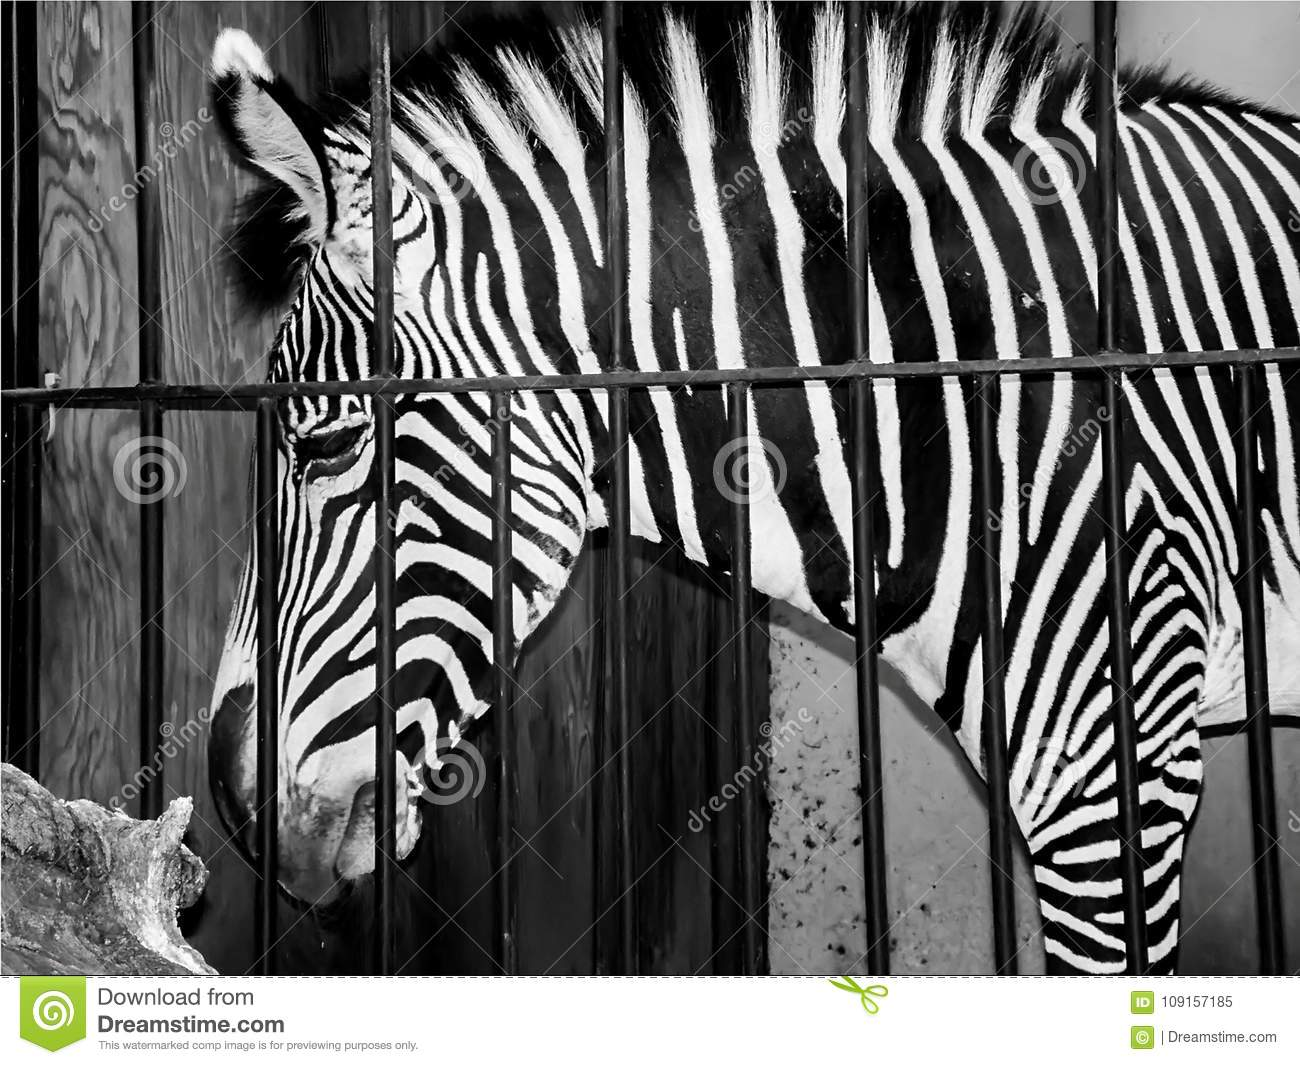 Profile of a sad zebra in a cage at the zoo in black and white